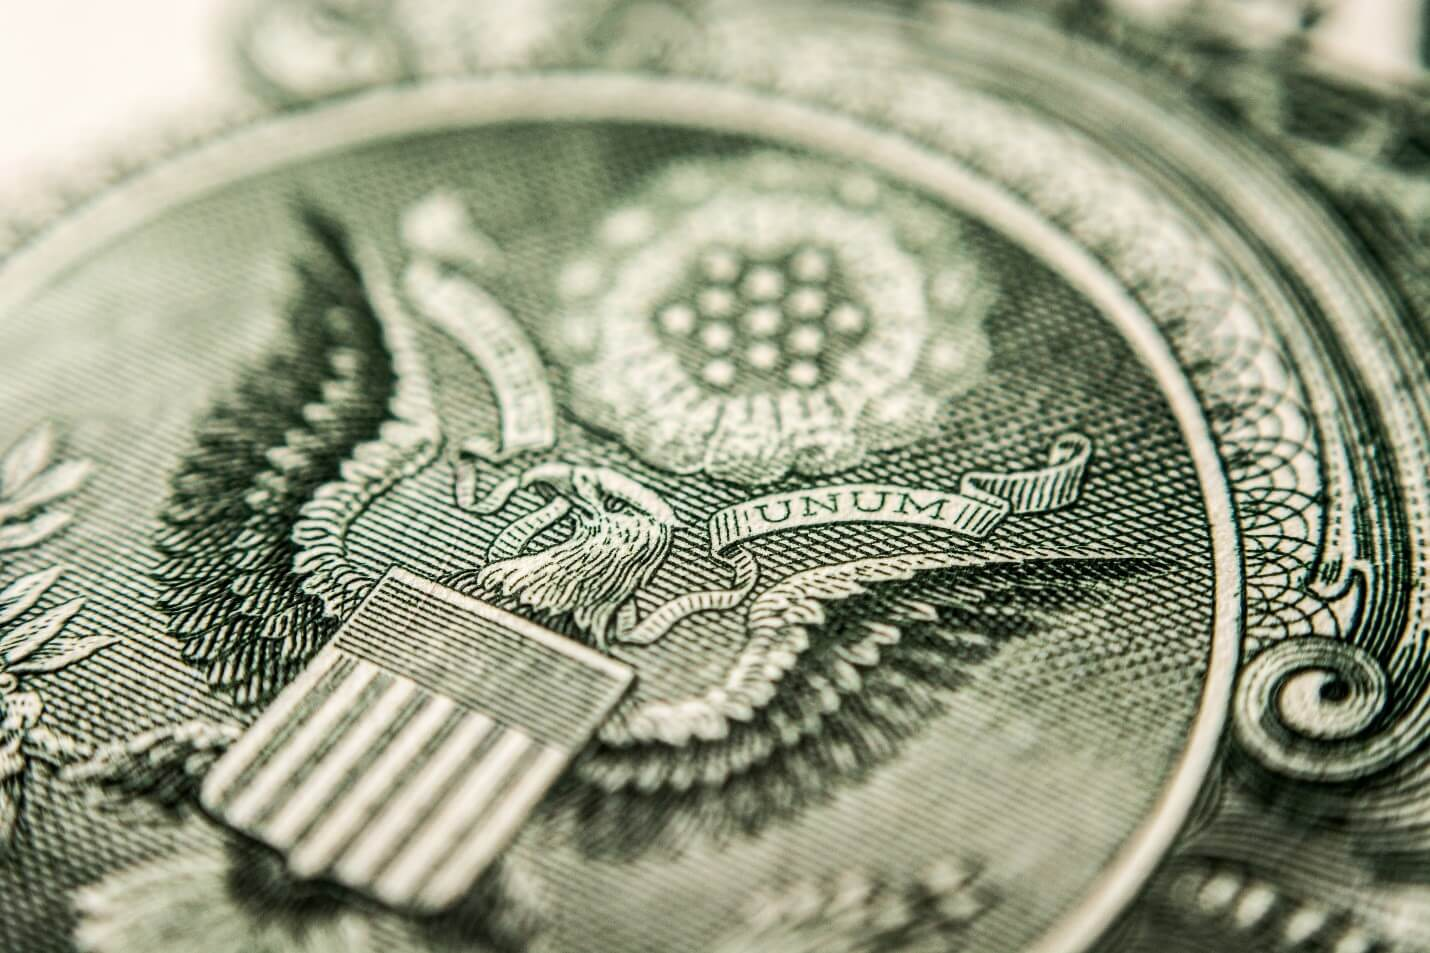 Close up of the US dollar